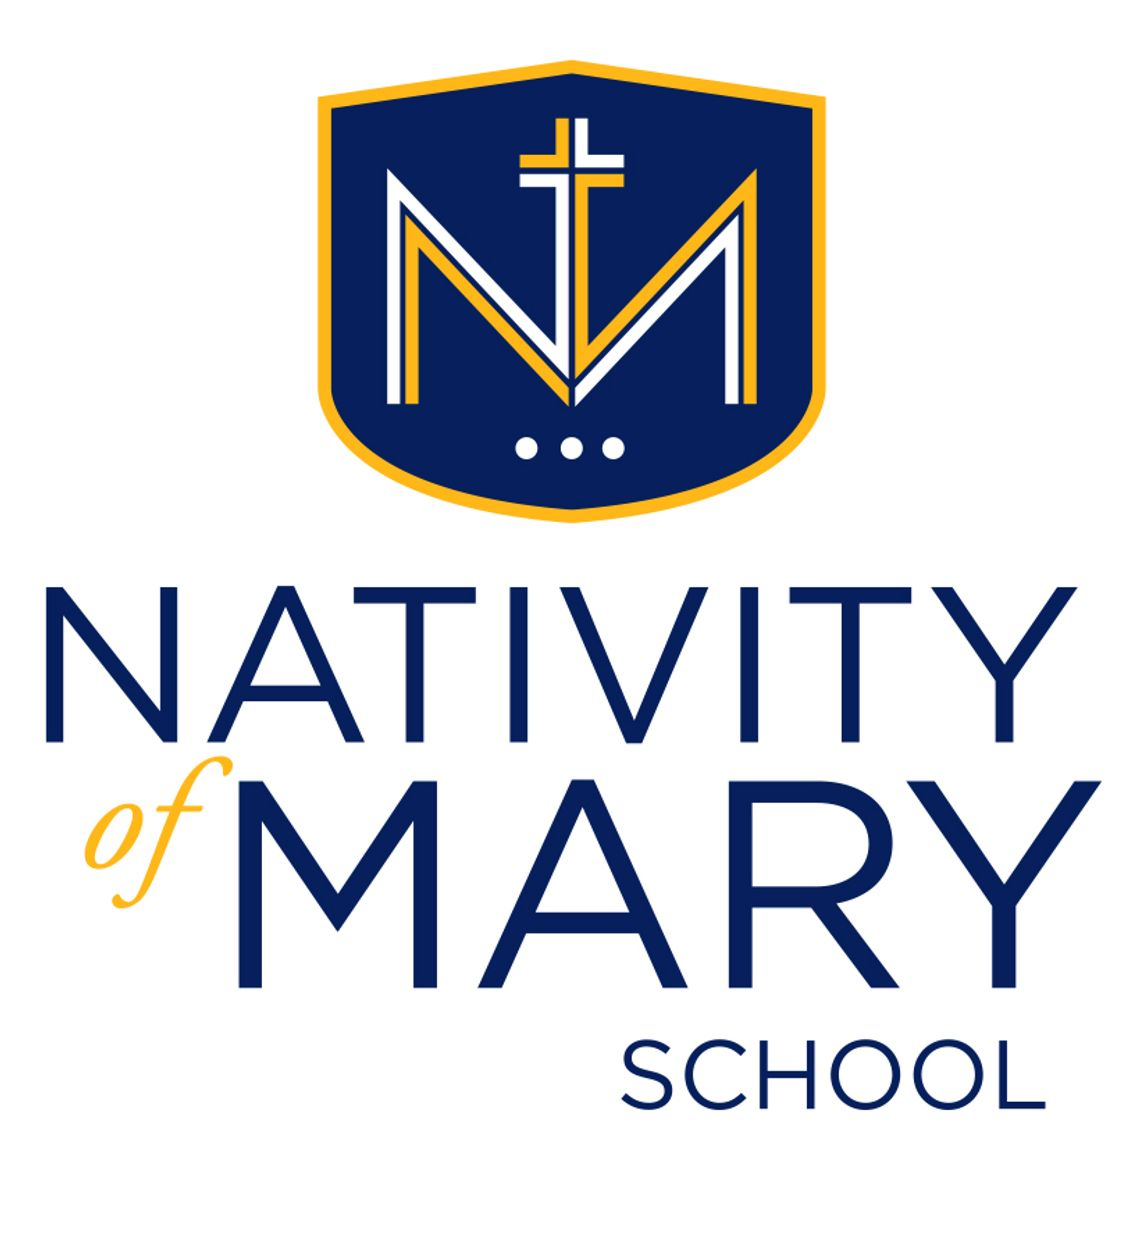 Nativity Of Mary School Photo